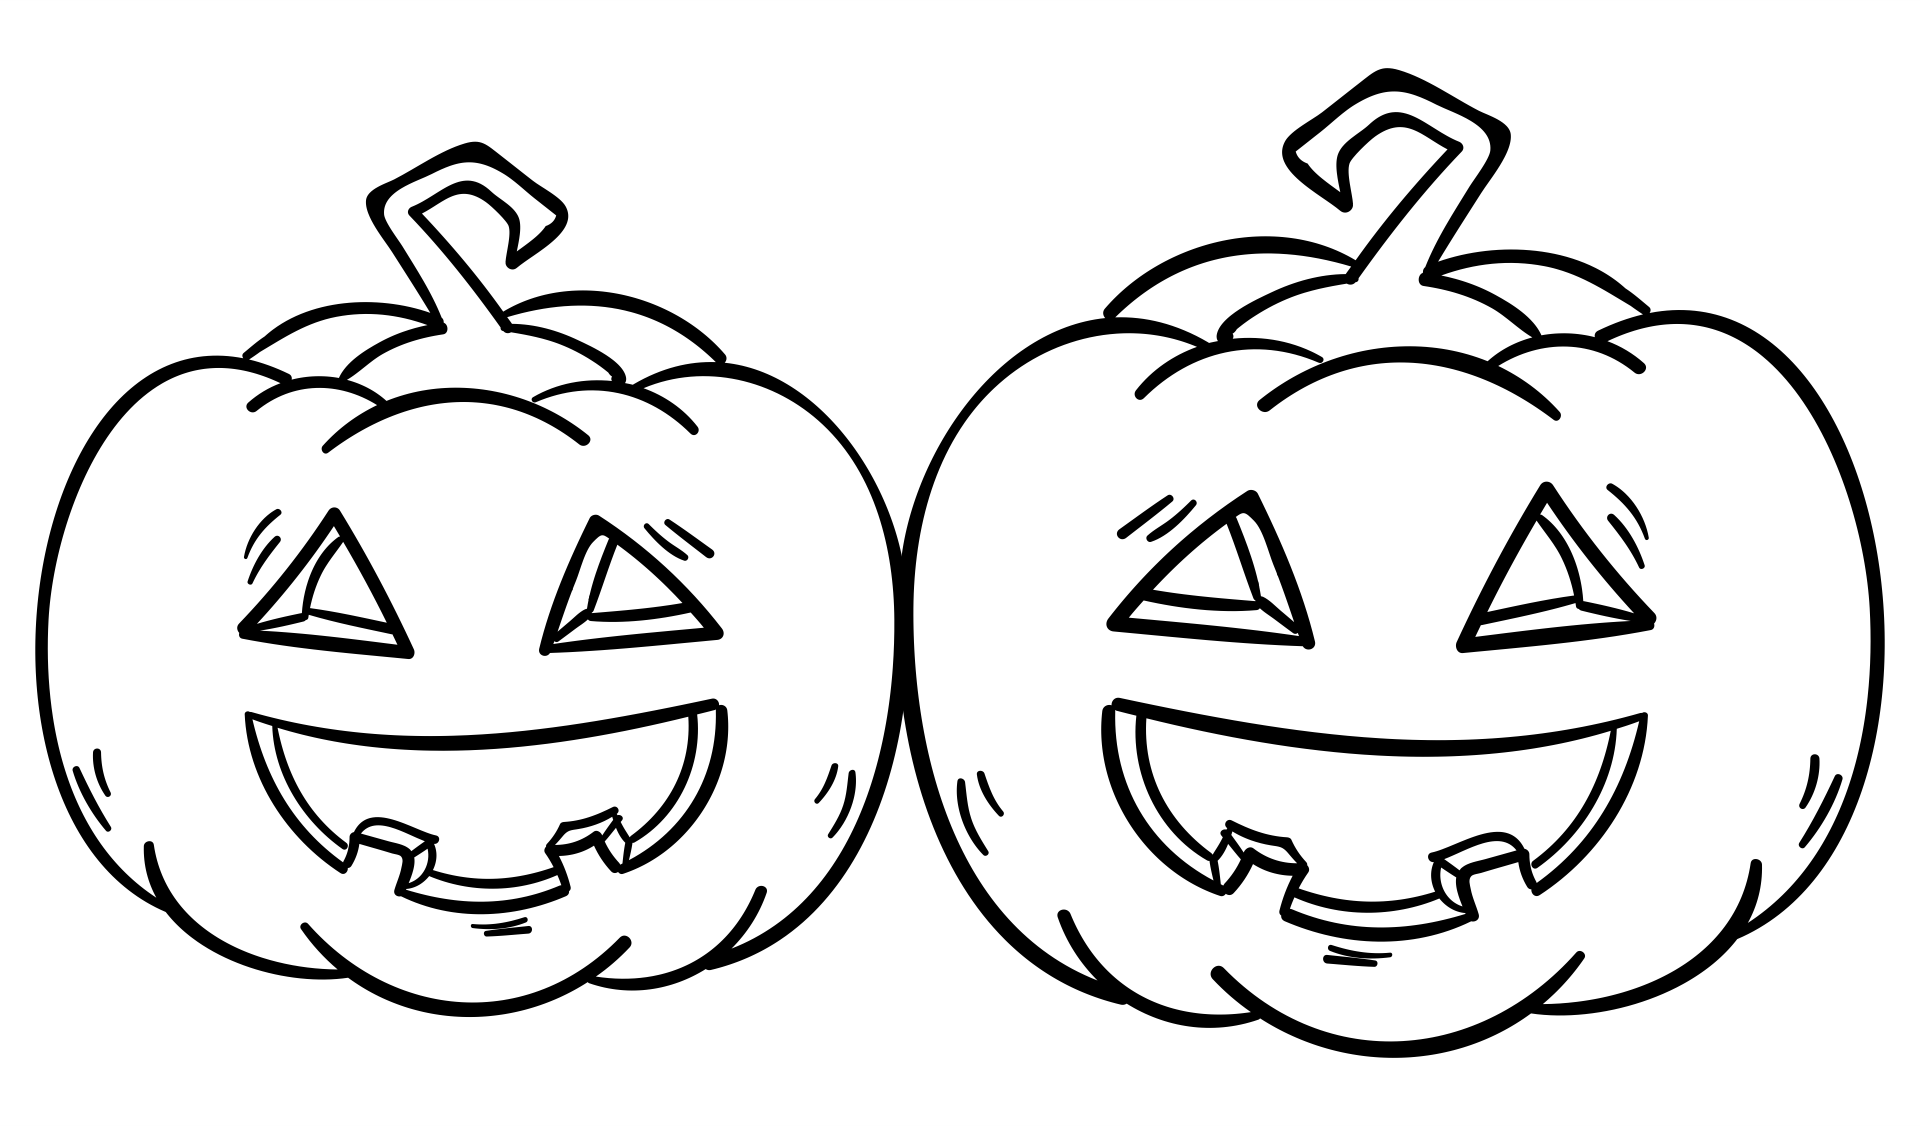 Halloween Printable Pumpkins Outline